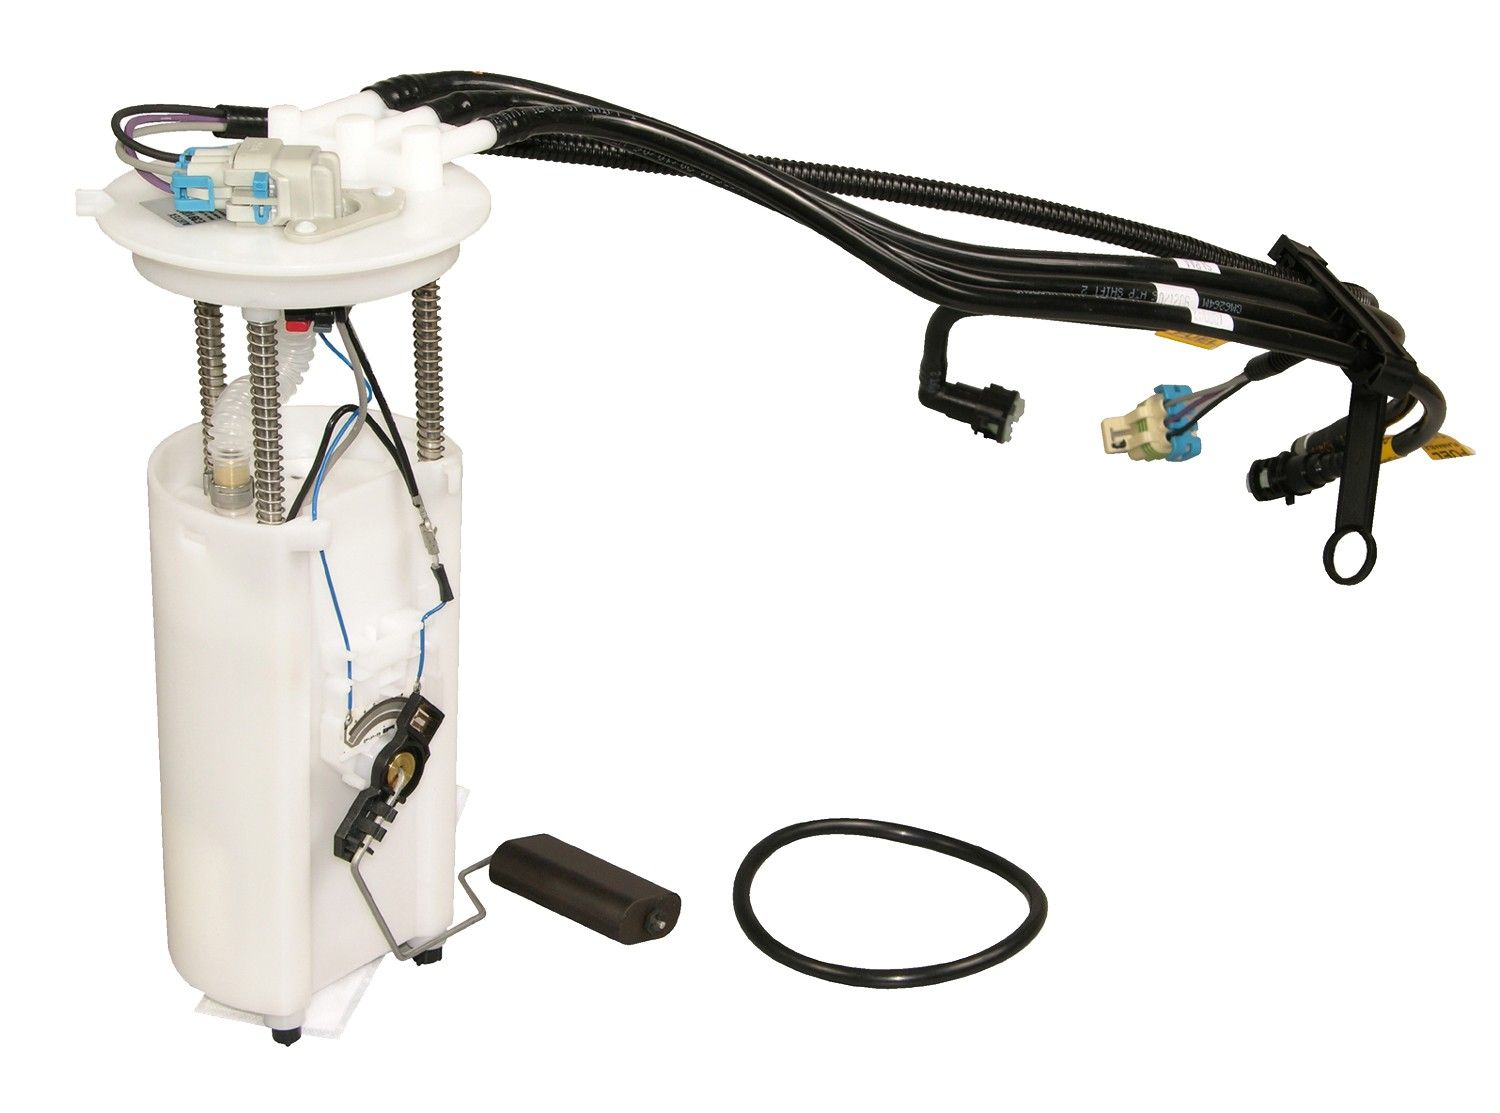 Includes Fuel Pump, Sending Unit, Float, Fuel Reservoir, Fuel Strainer,  Upgraded Wiring Harness, and Tank Seal Wiring Harness Included.